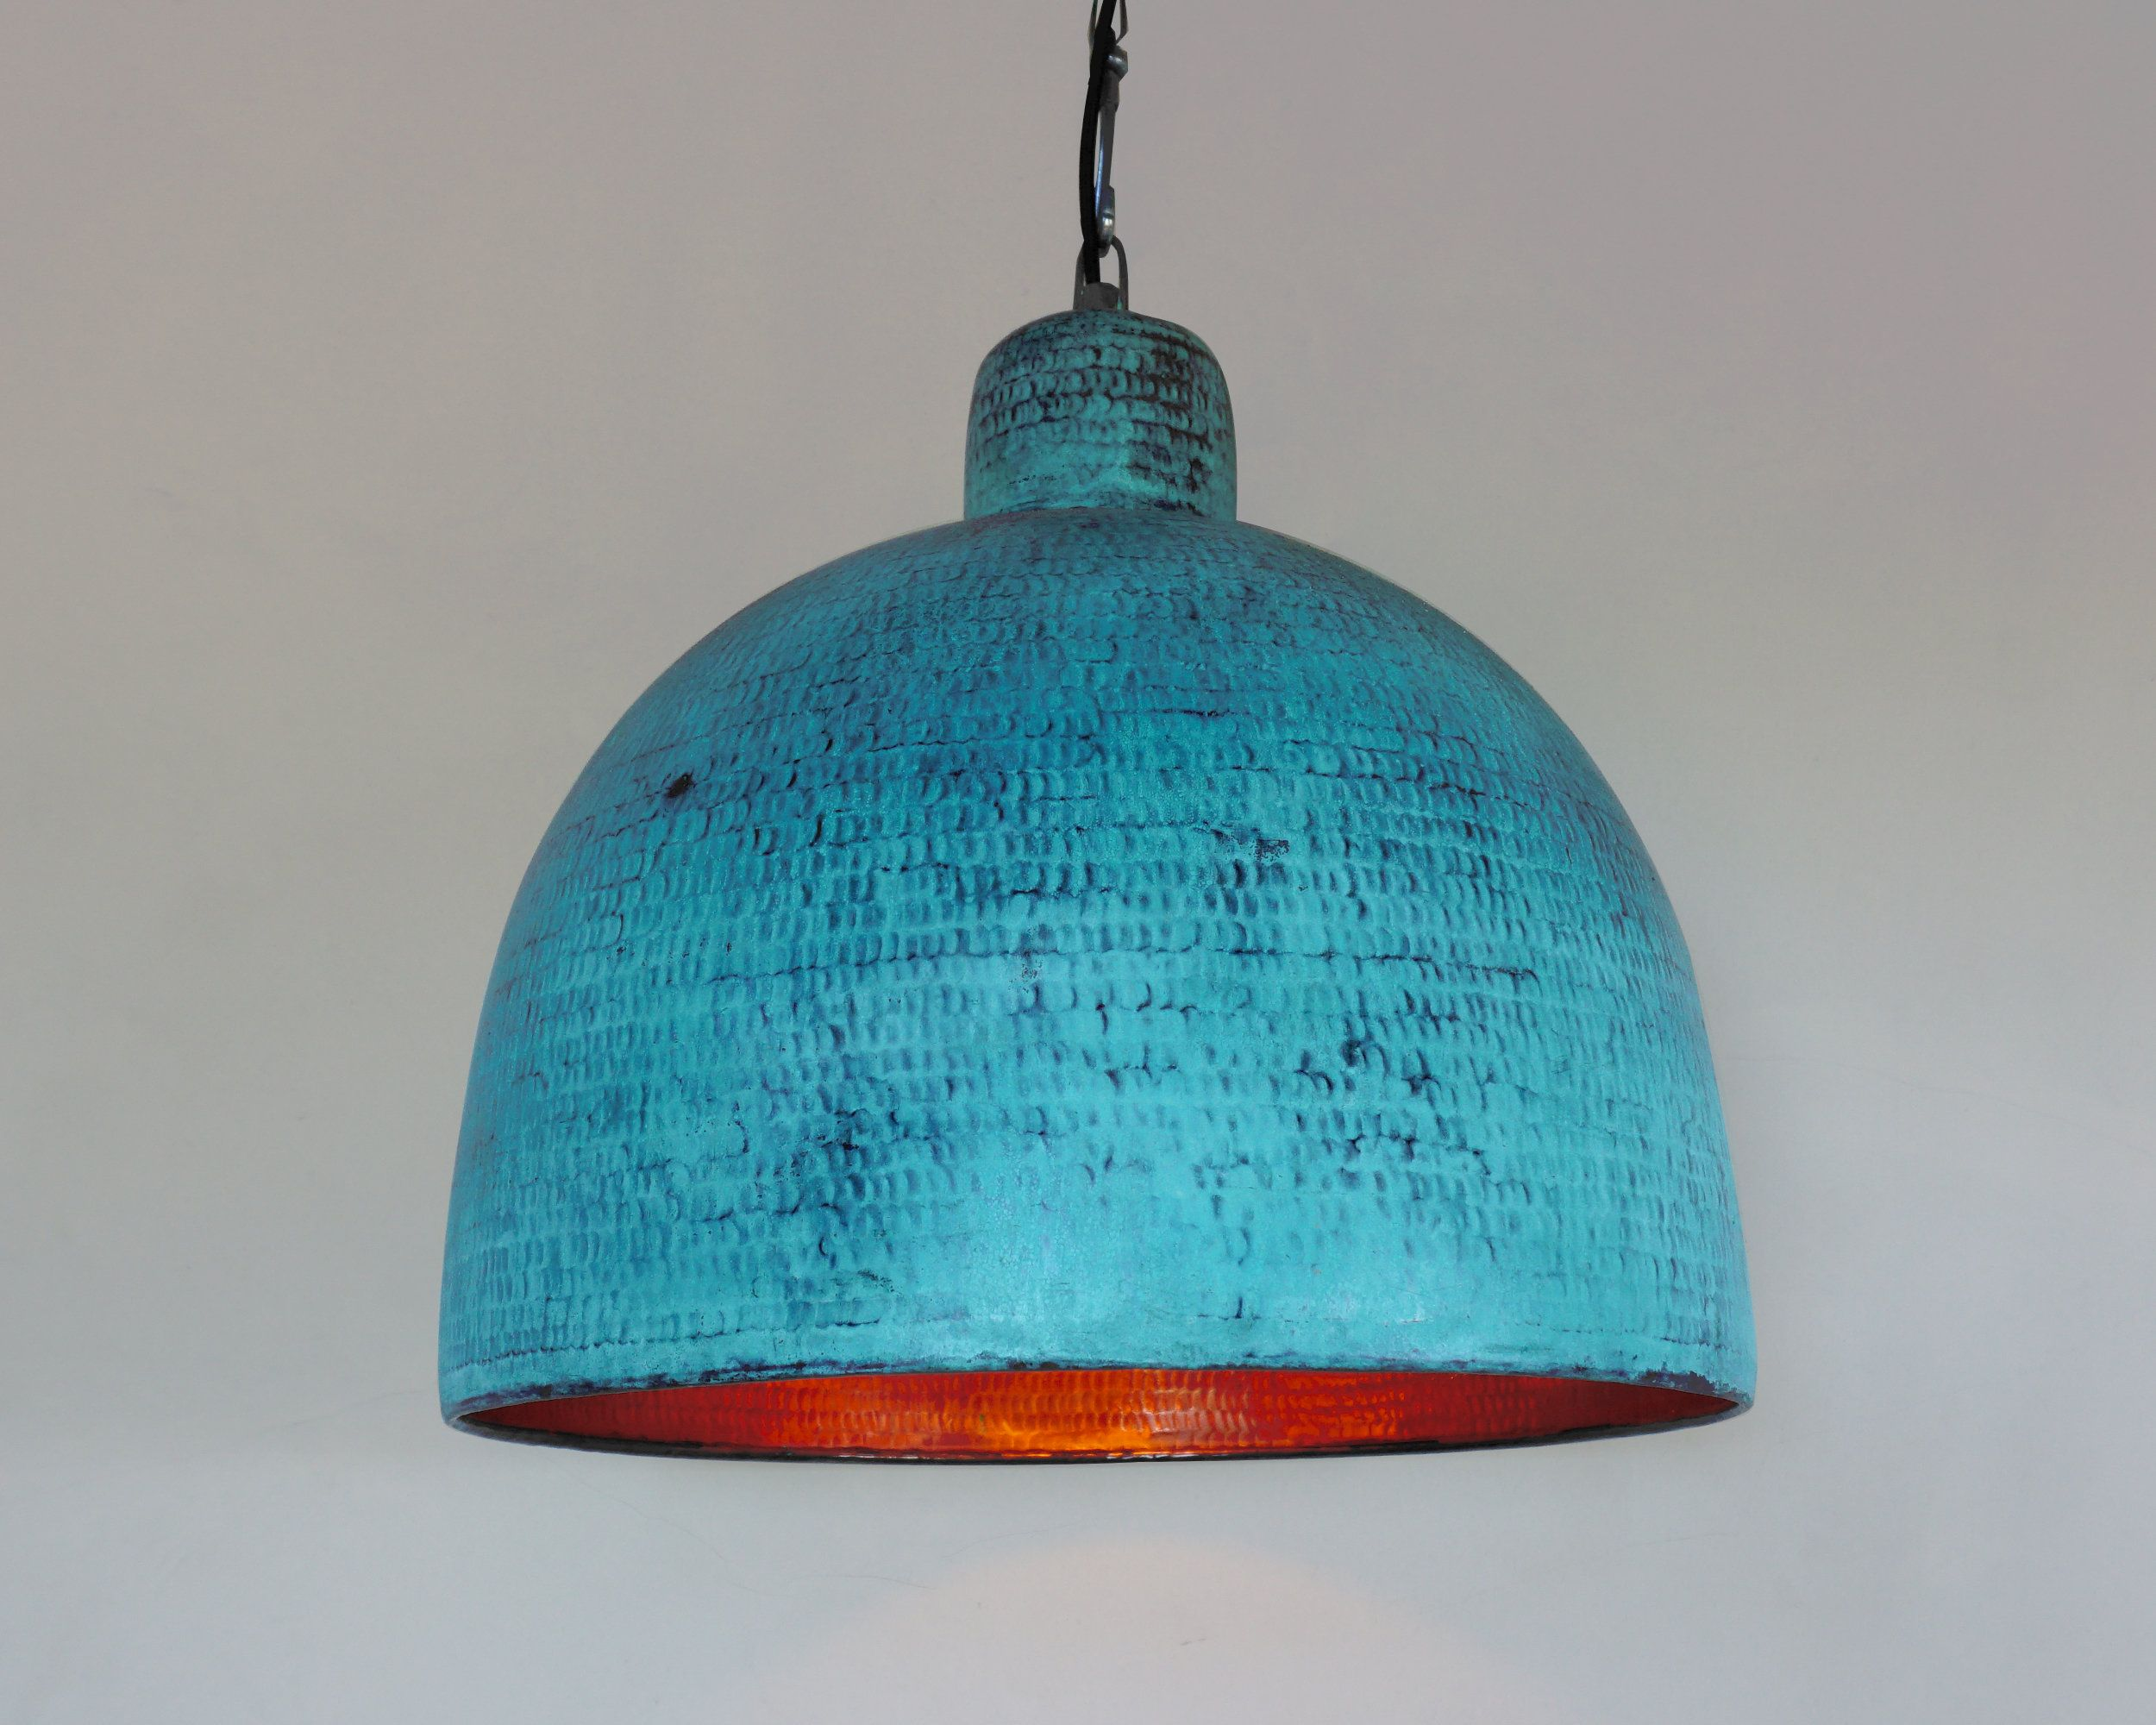 Oxidized Copper Pendant Light Hammered Green Patina Lamp Copper Industrial Lamp Copper Kitchen Copper Pendant Lights Art Deco Light Fixture Pendant Light